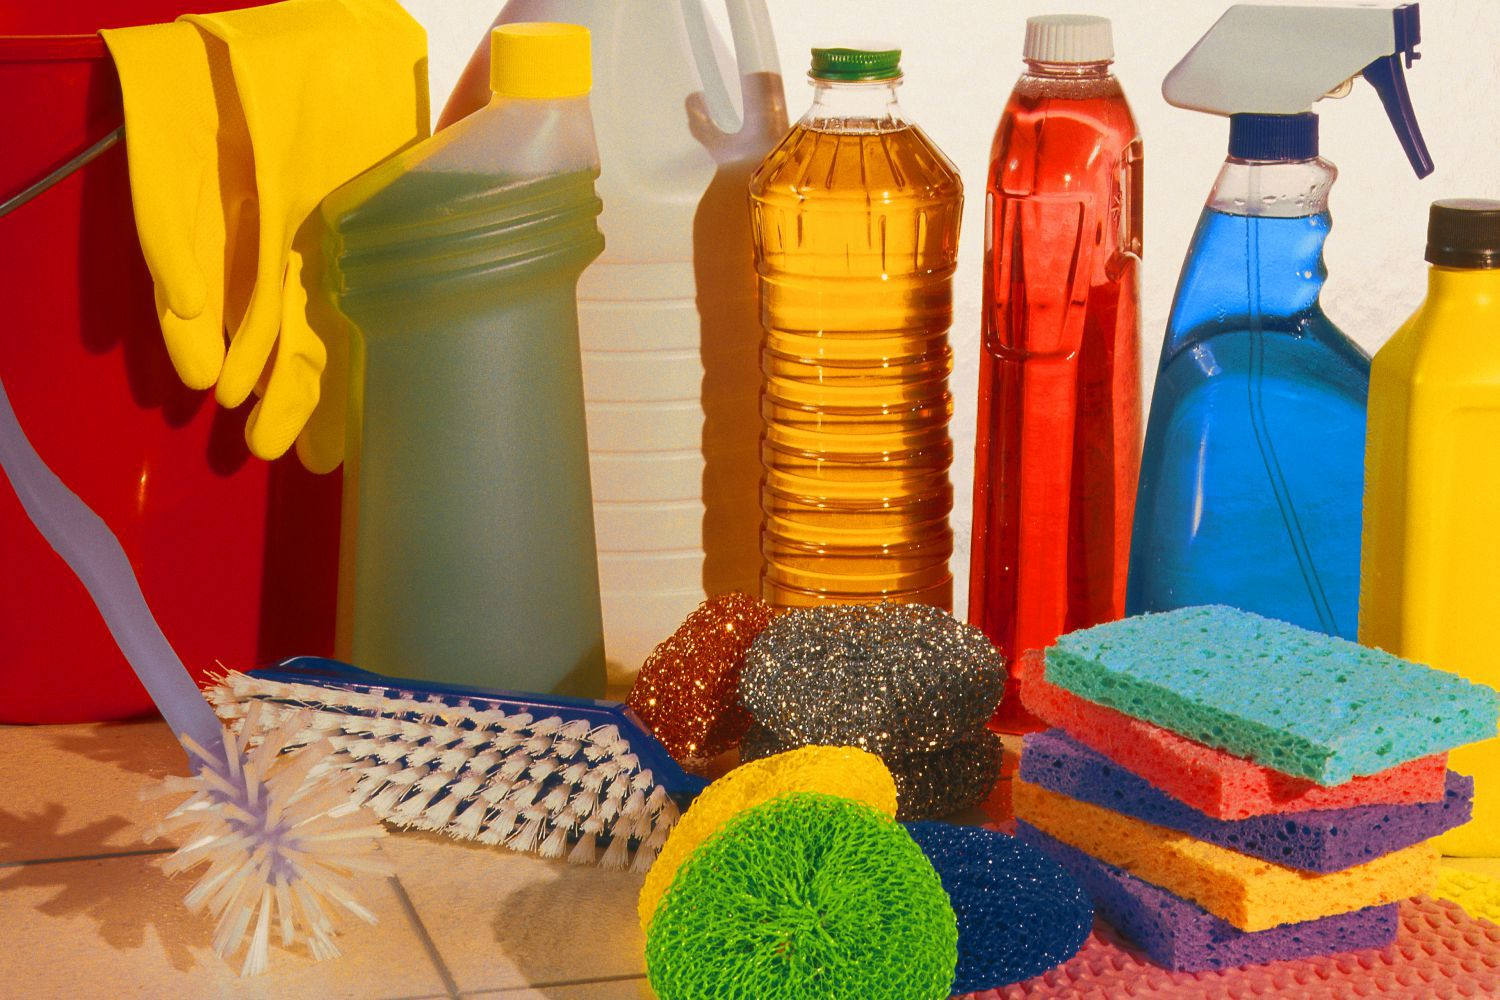 Cleaners and chemicals used by our housekeeping services in Elk Grove, CA